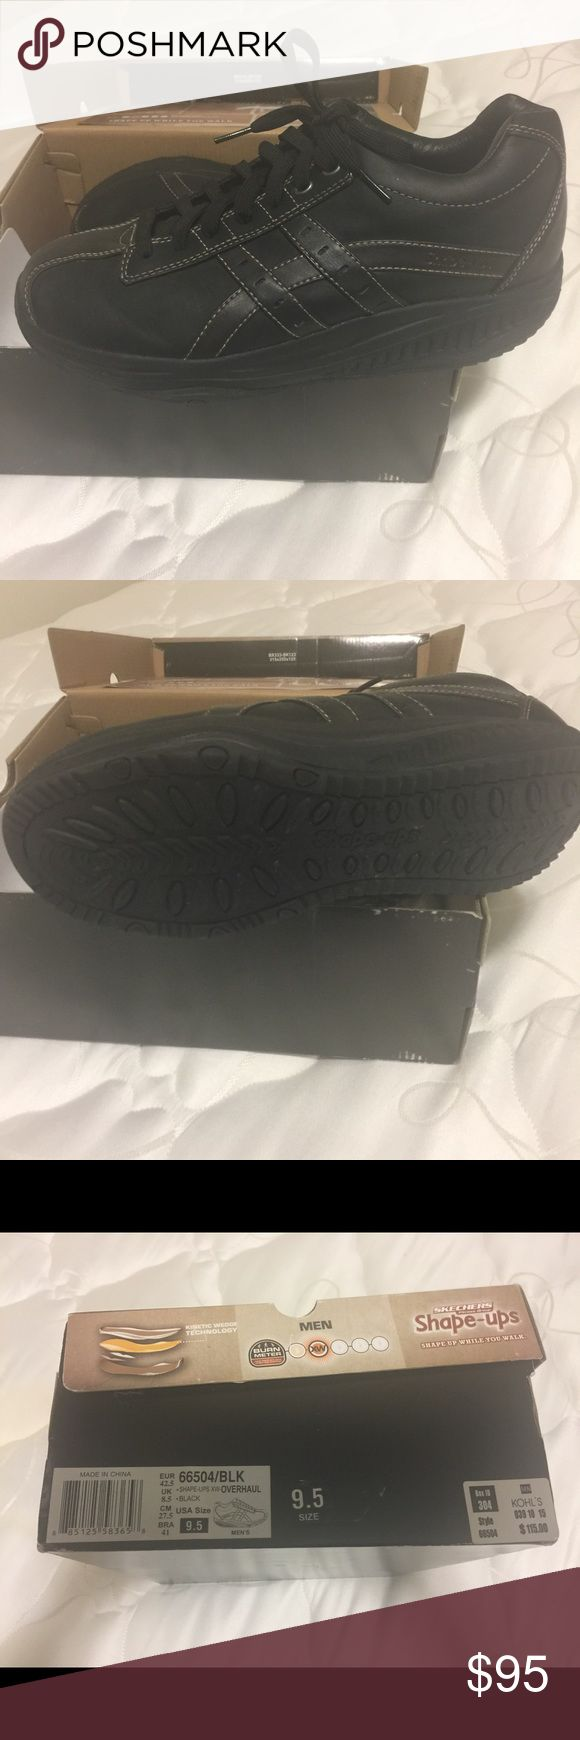 Sketchers shape-ups for men NIB Sketchers shape-ups for men. Purchased and only test wore them around the house once and never wore them again. They need a home. Very comfortable shoes. Skechers Shoes Athletic Shoes